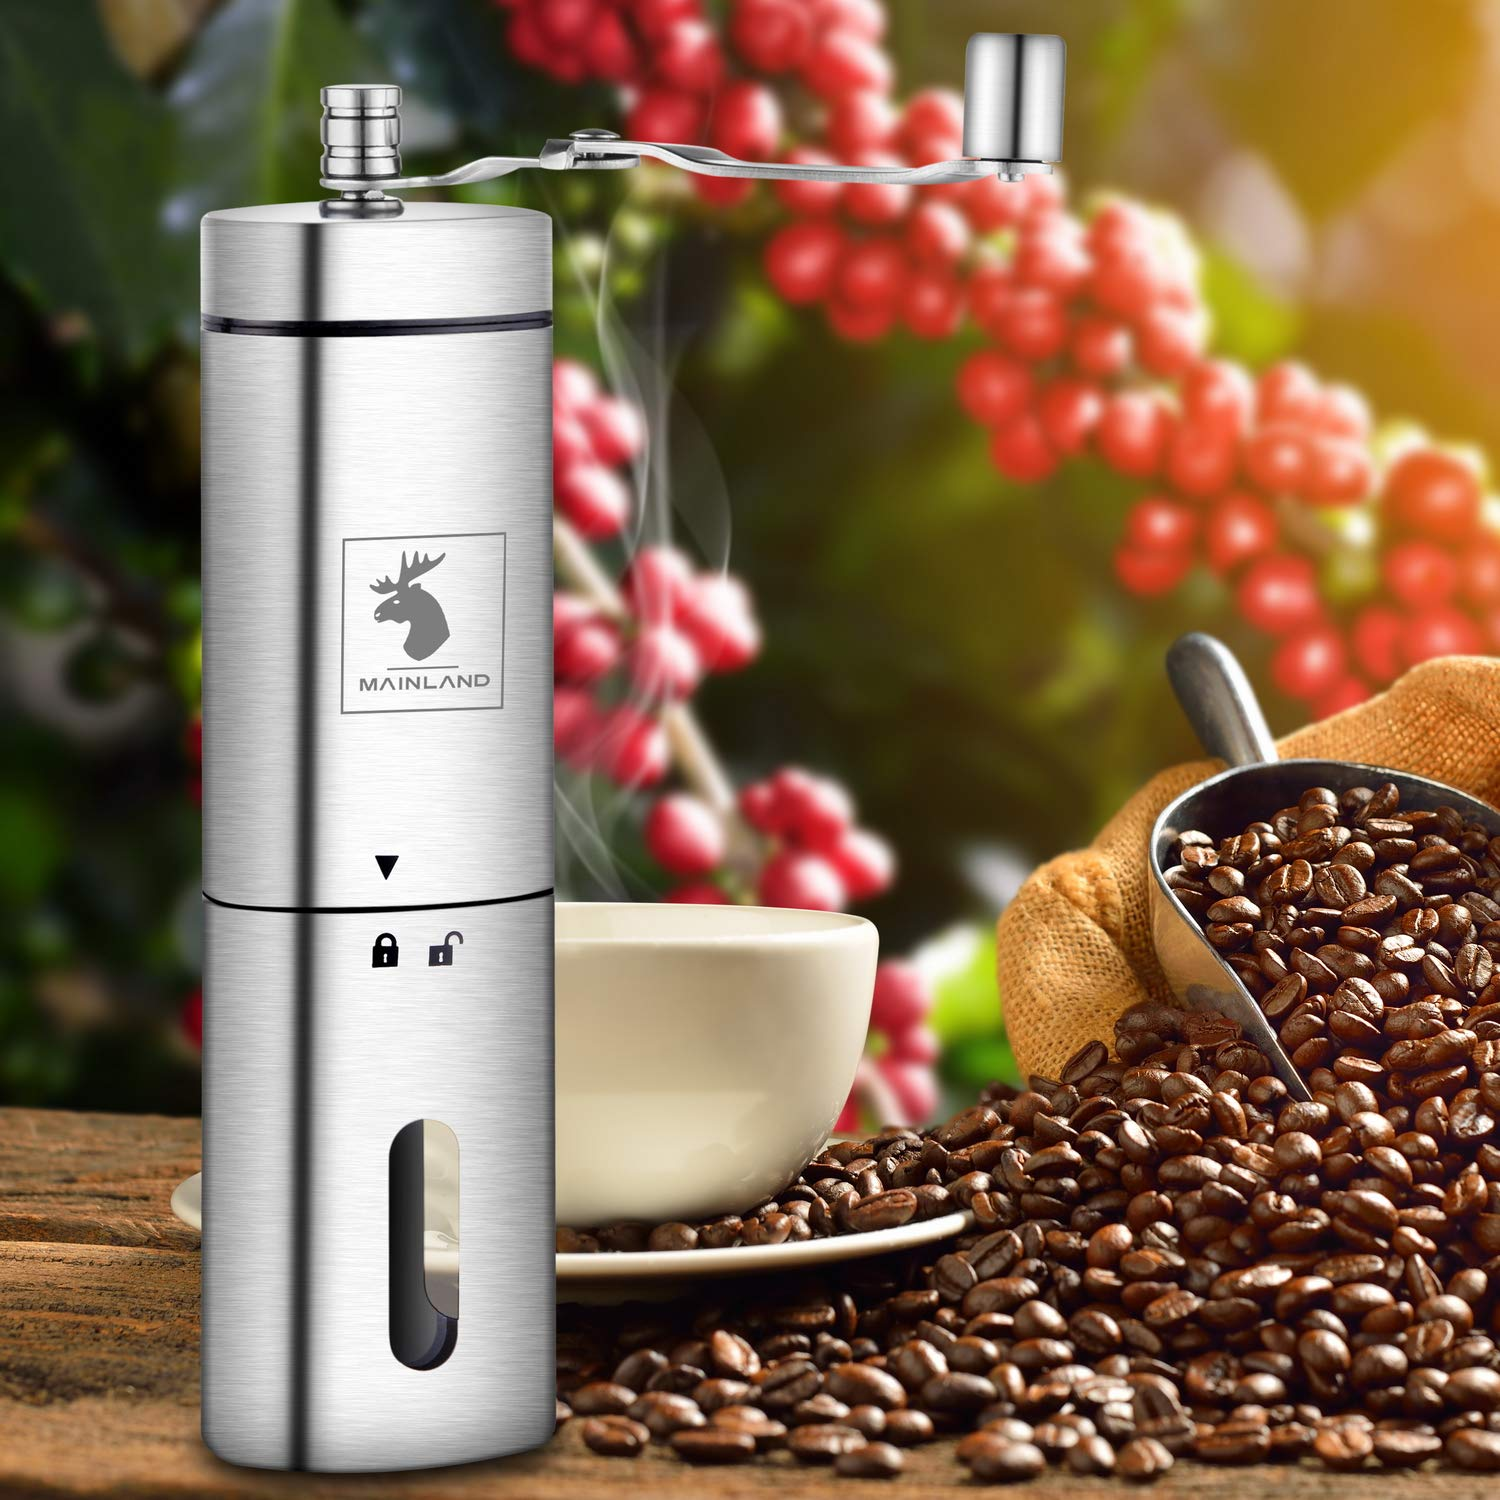 Manual Coffee Grinder by Mainland (Hand Held) Adjustable Fine, Medium, Coarse Grounds | Ceramic Burr Mill for Whole Bean Grinding | Home Kitchen, Office, Travel by Mainland (Image #8)